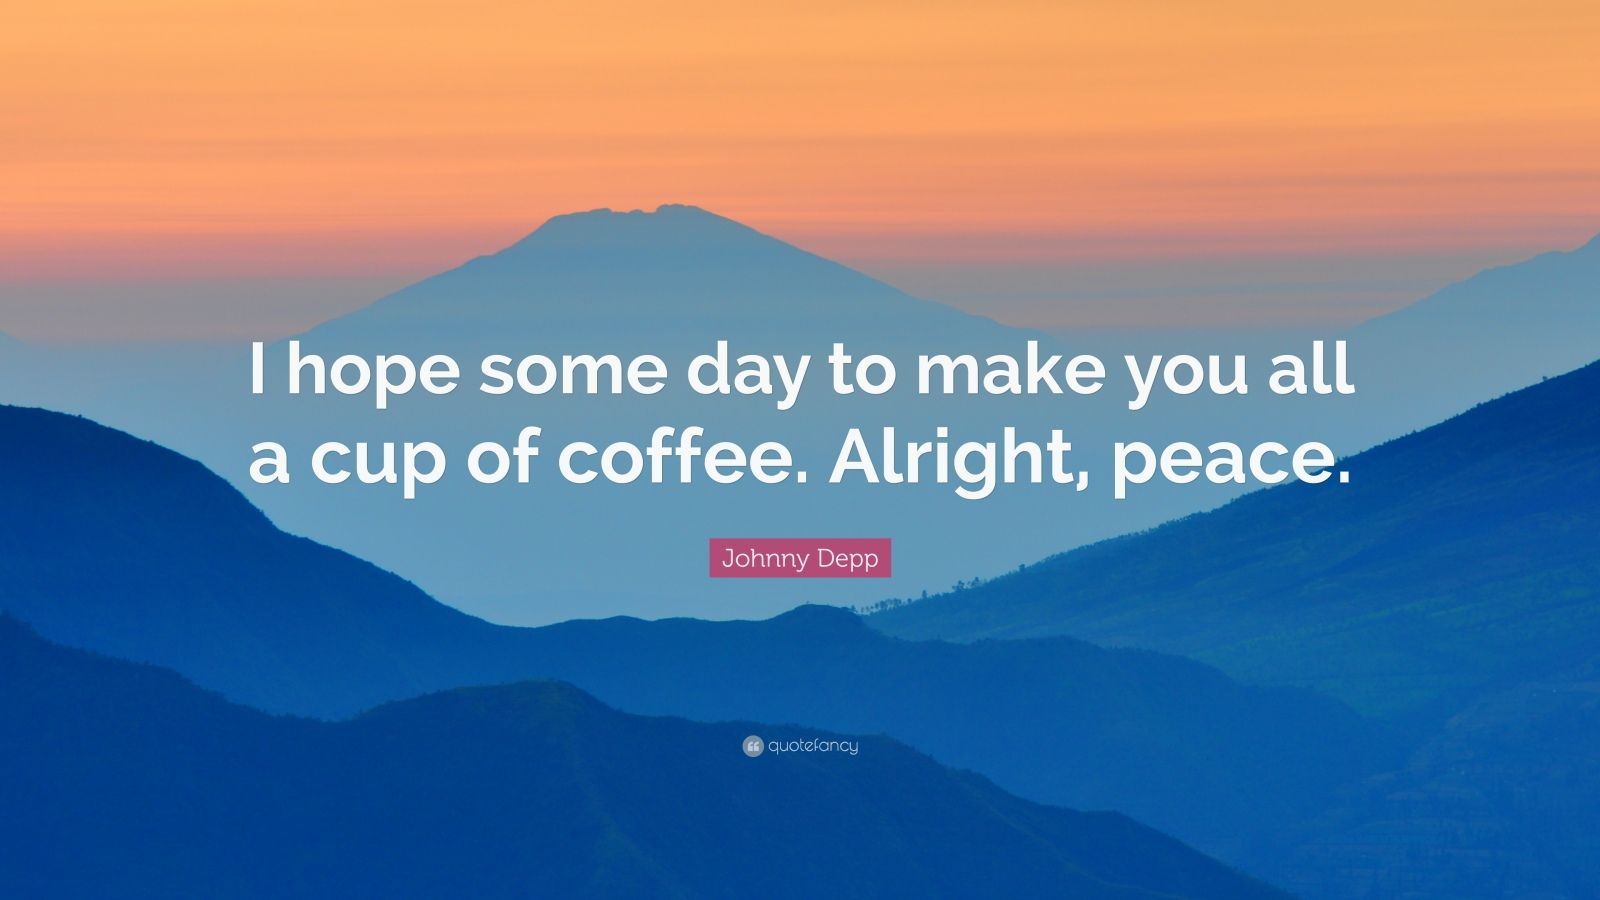 """Johnny Depp Quote: """"I hope some day to make you all a cup of coffee. Alright, peace."""""""